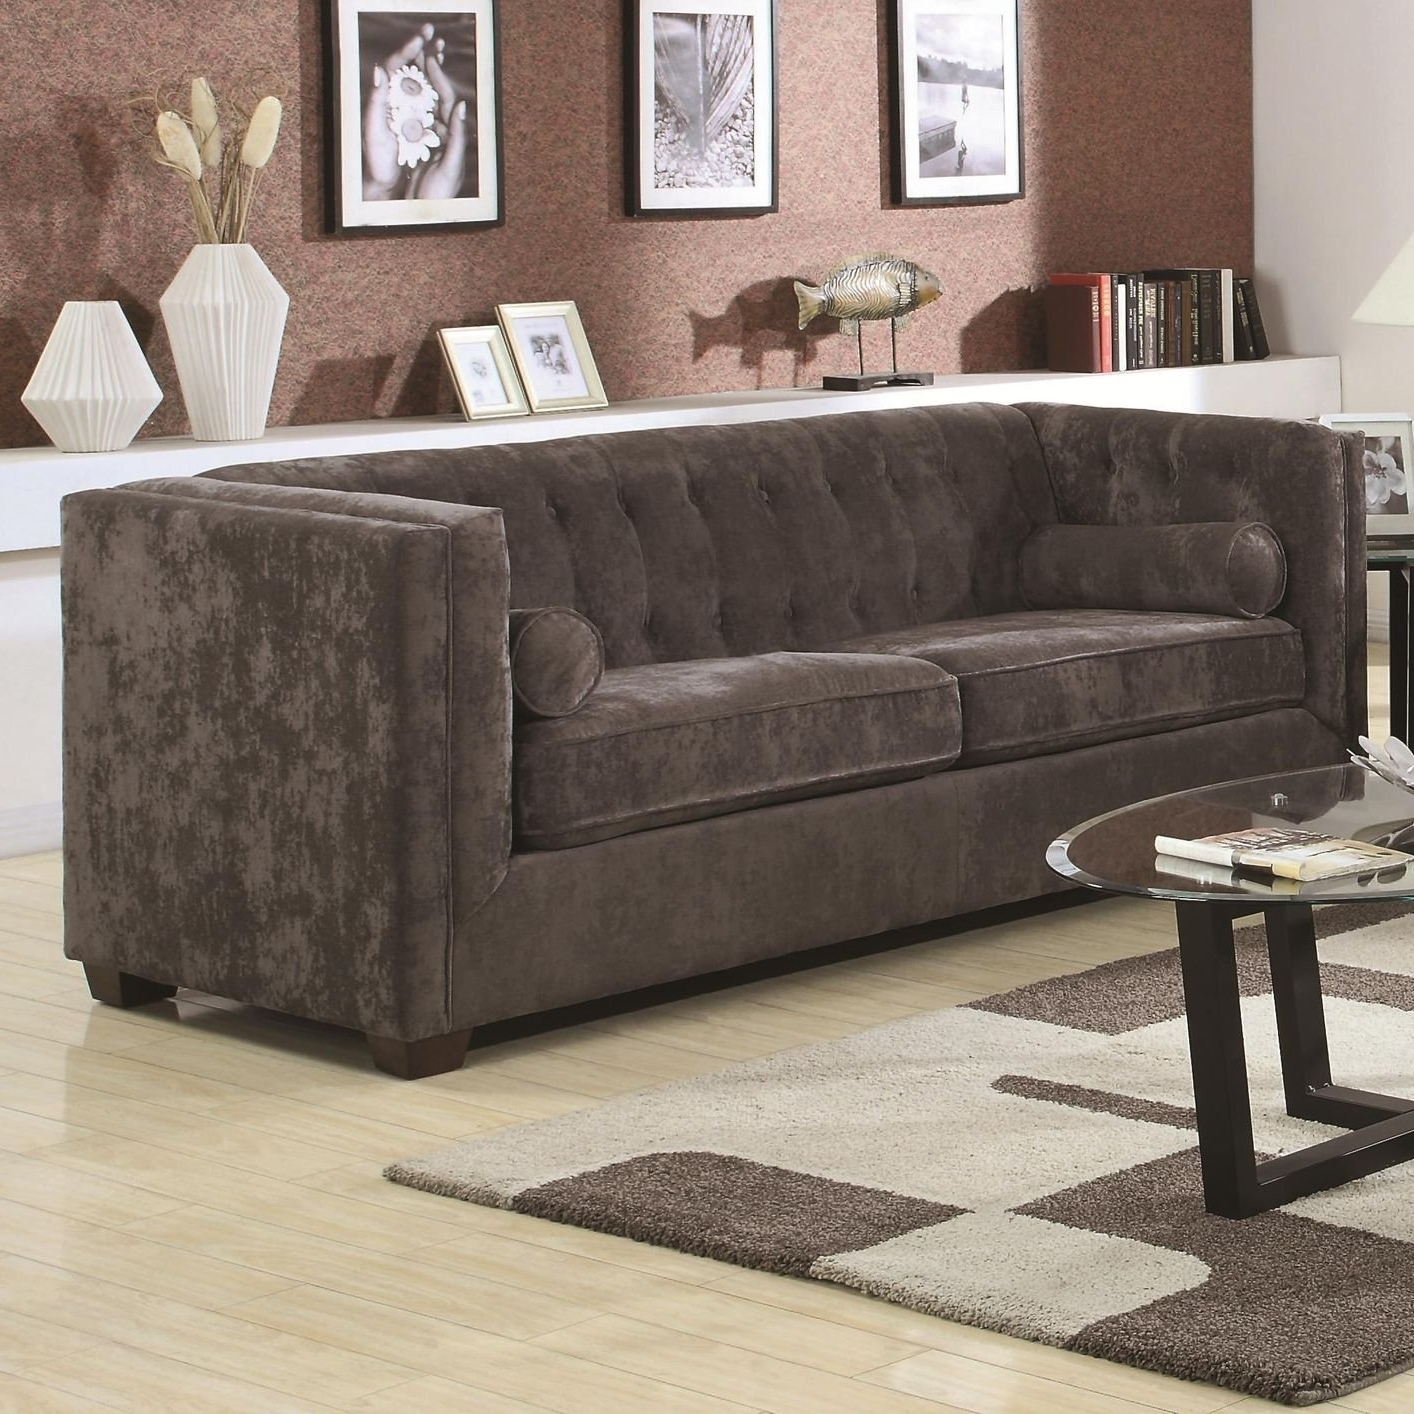 2018 Furniture : Klaussner Alexis Sofa Sofa Set At Cheap Rate In Regarding Dufresne Sectional Sofas (View 1 of 15)